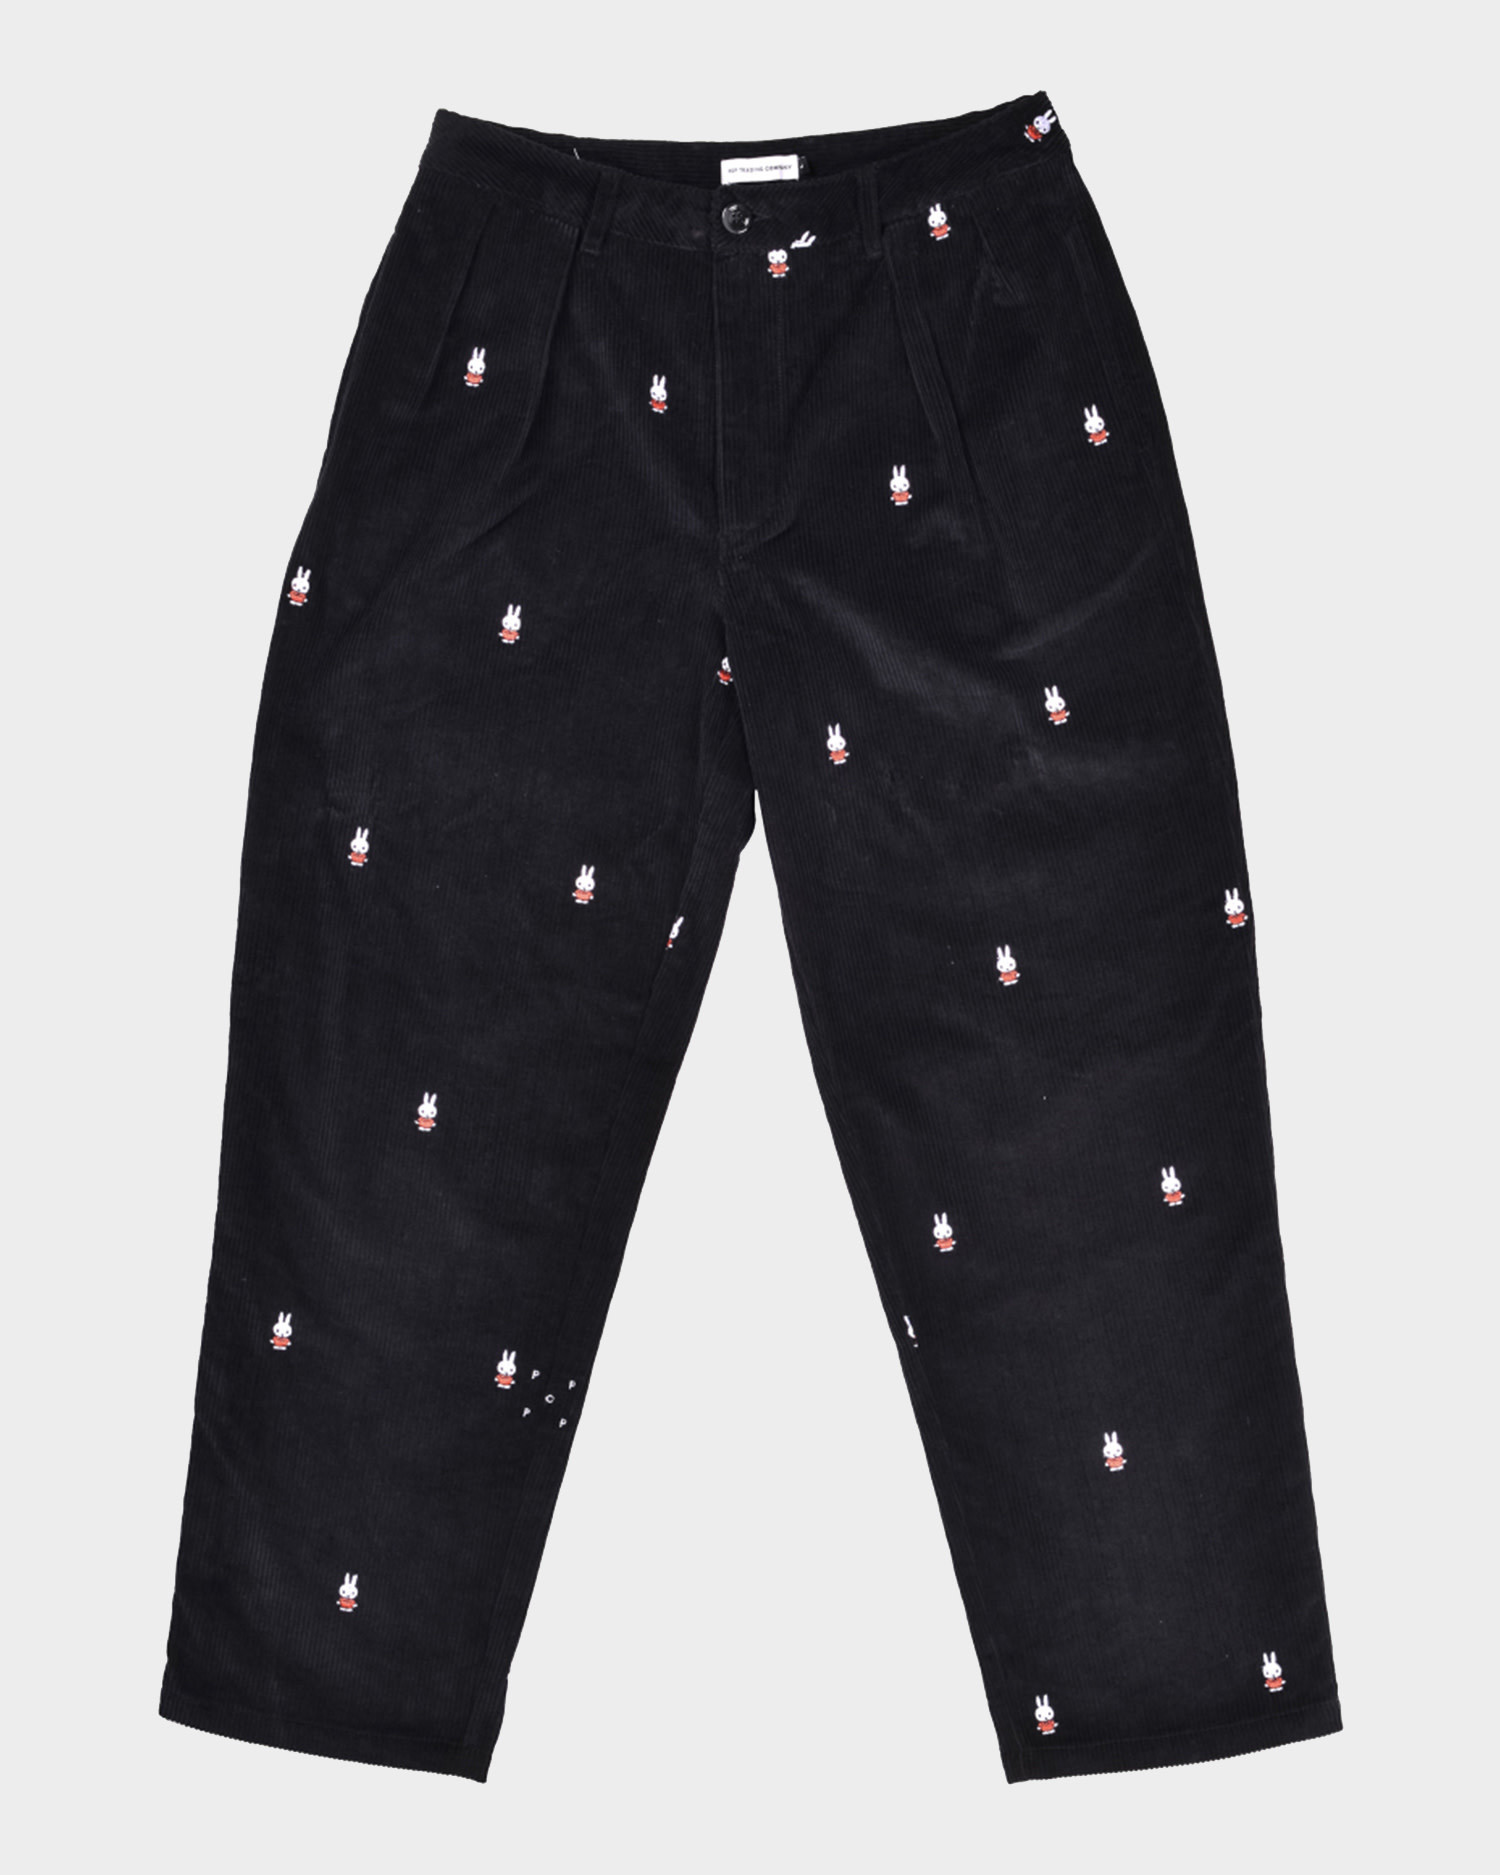 Pop Trading Co X Miffy Suit Pant